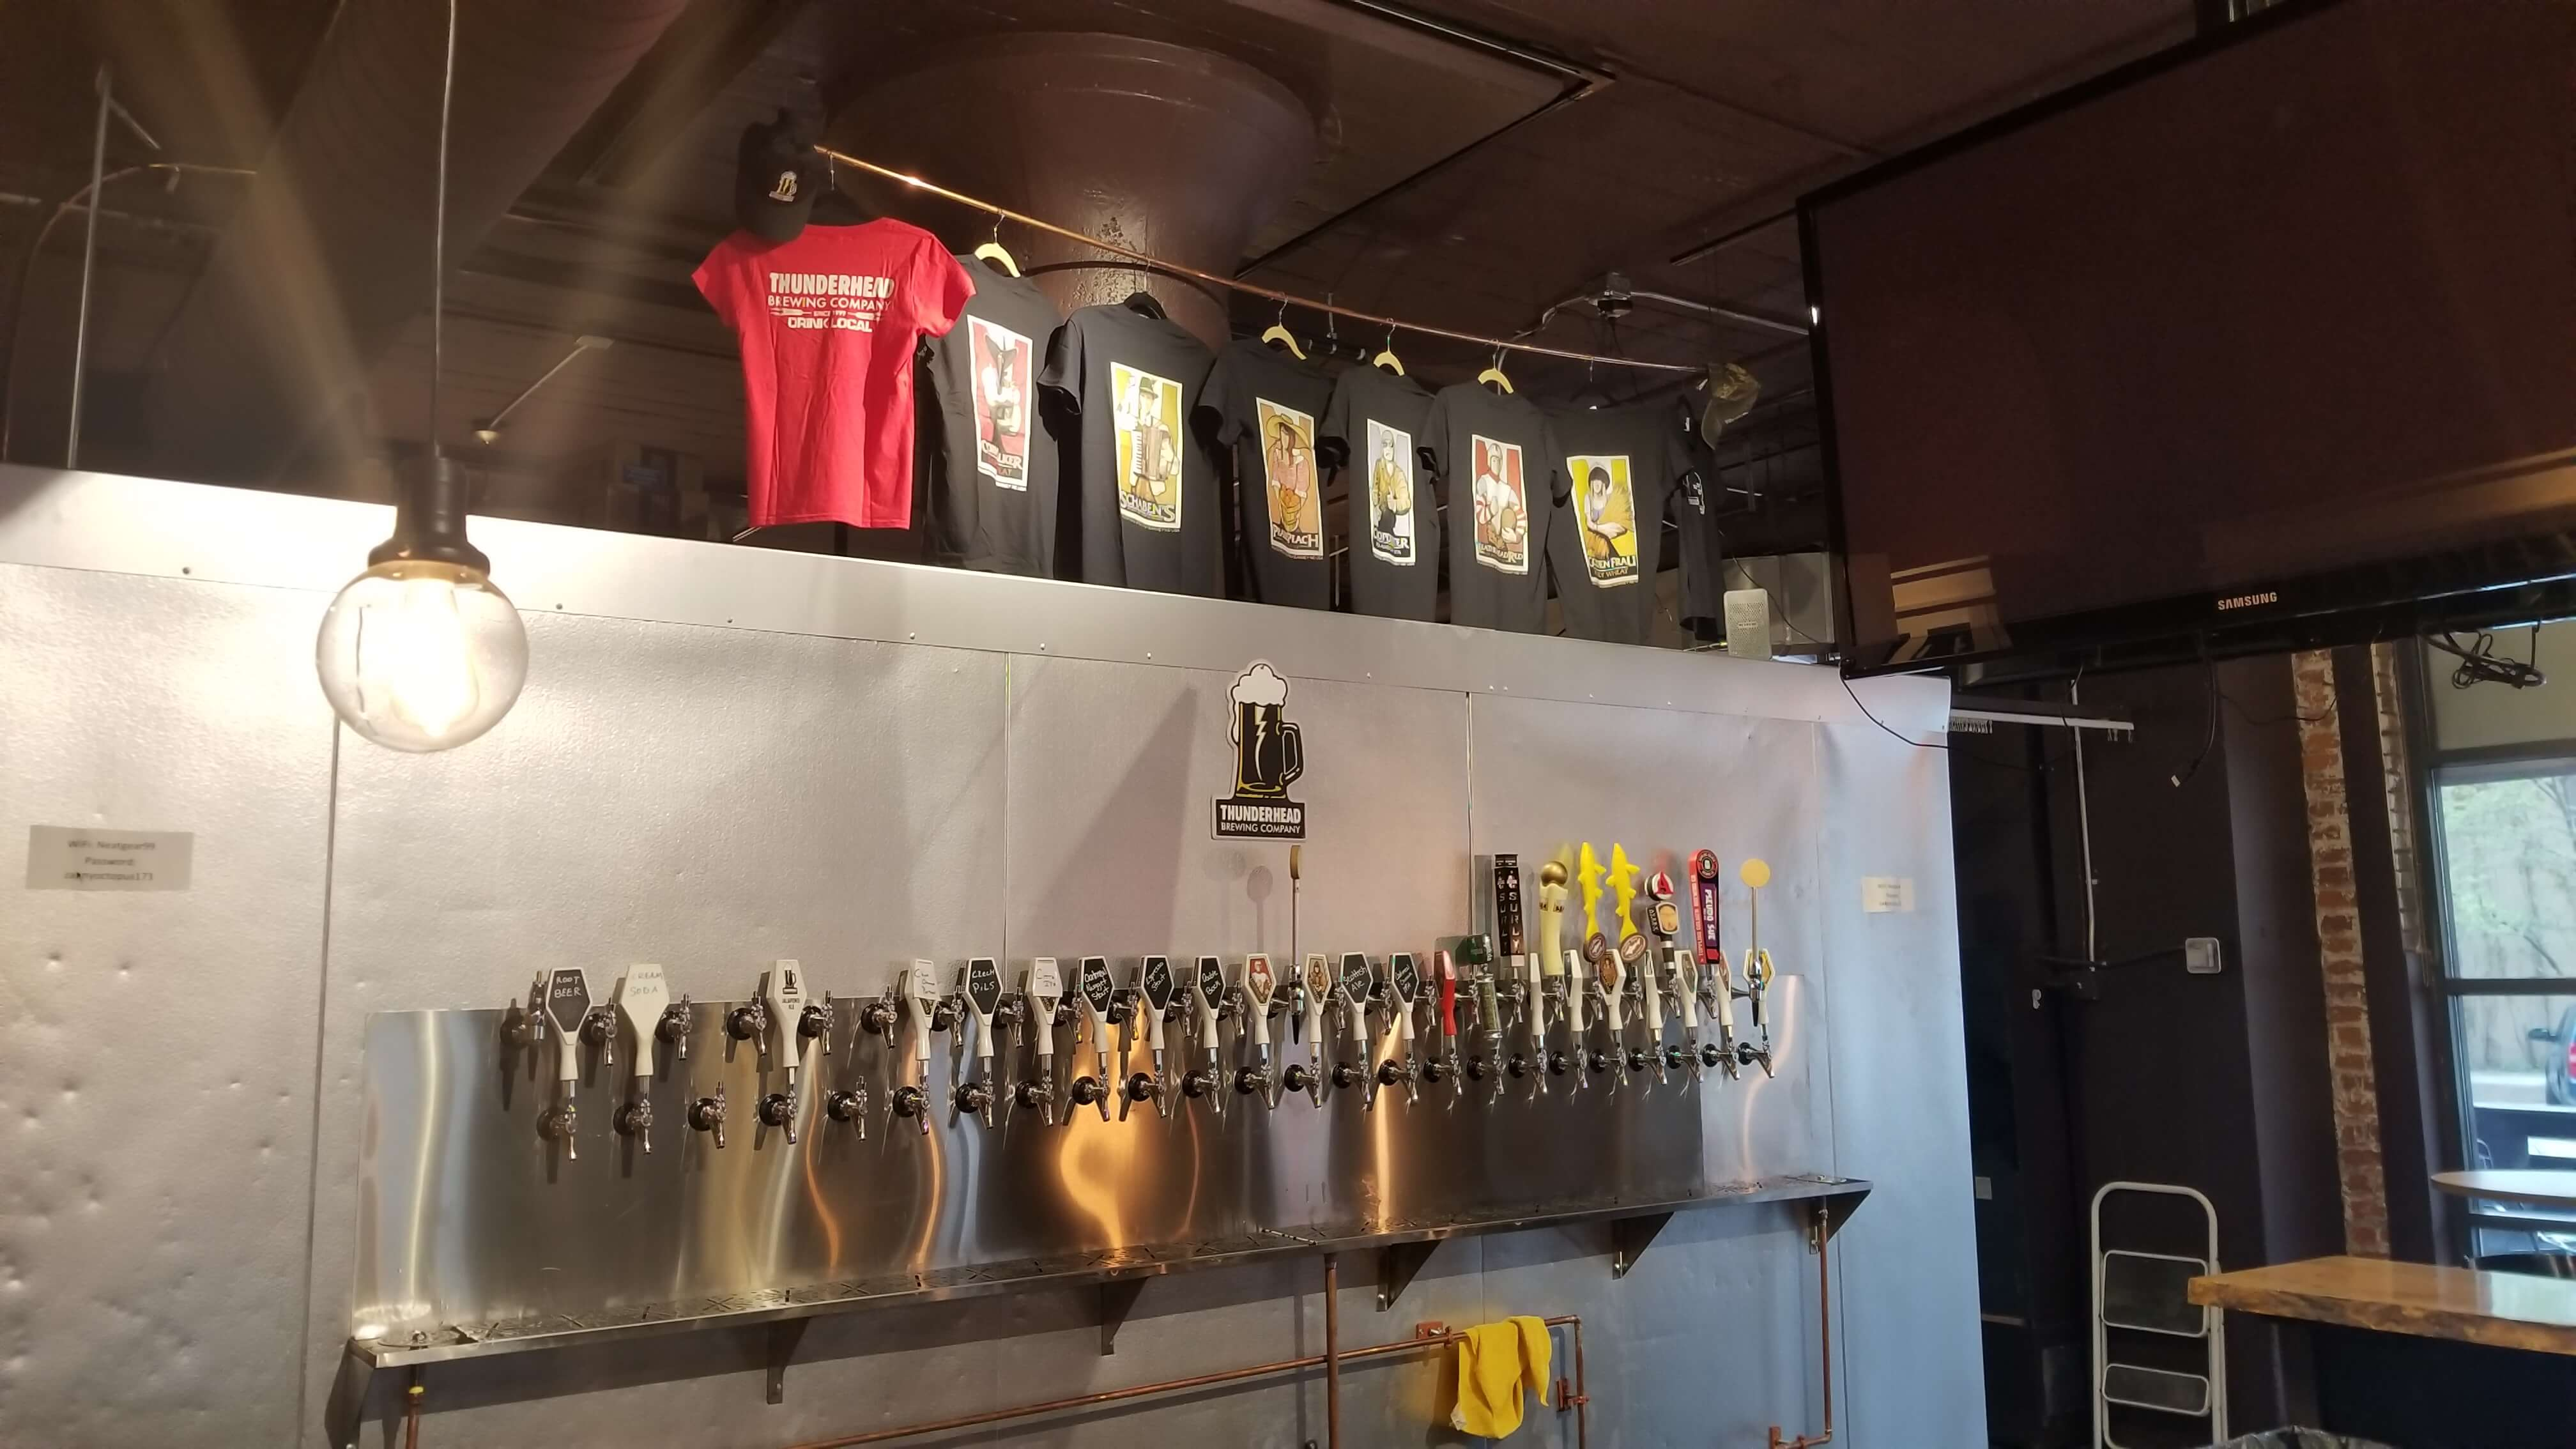 Metal Beer Tap Wall with Thunderhead Brewing Shirts Hanging Above It